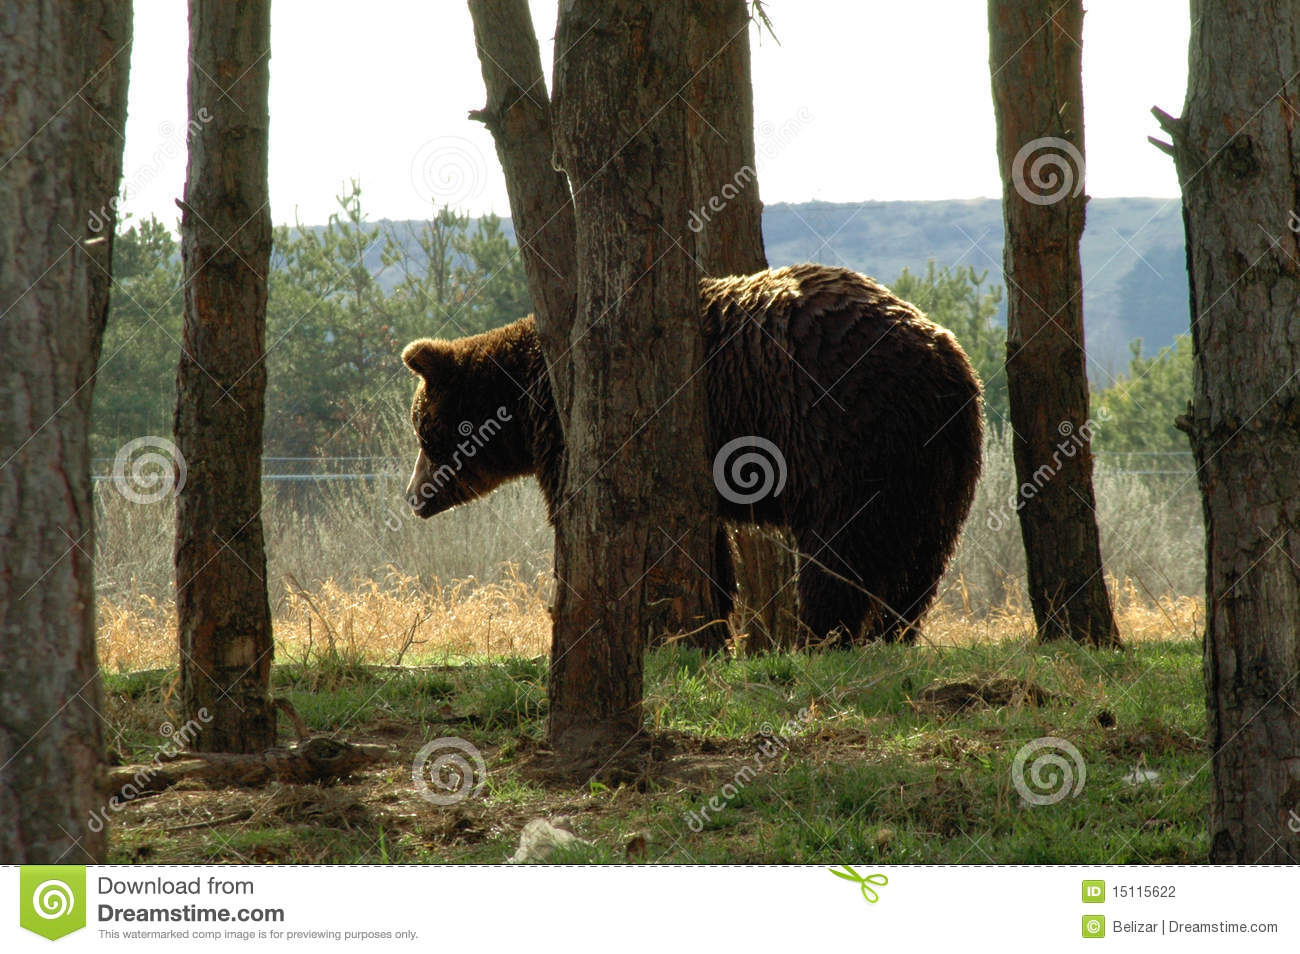 Bear in the edge of forest